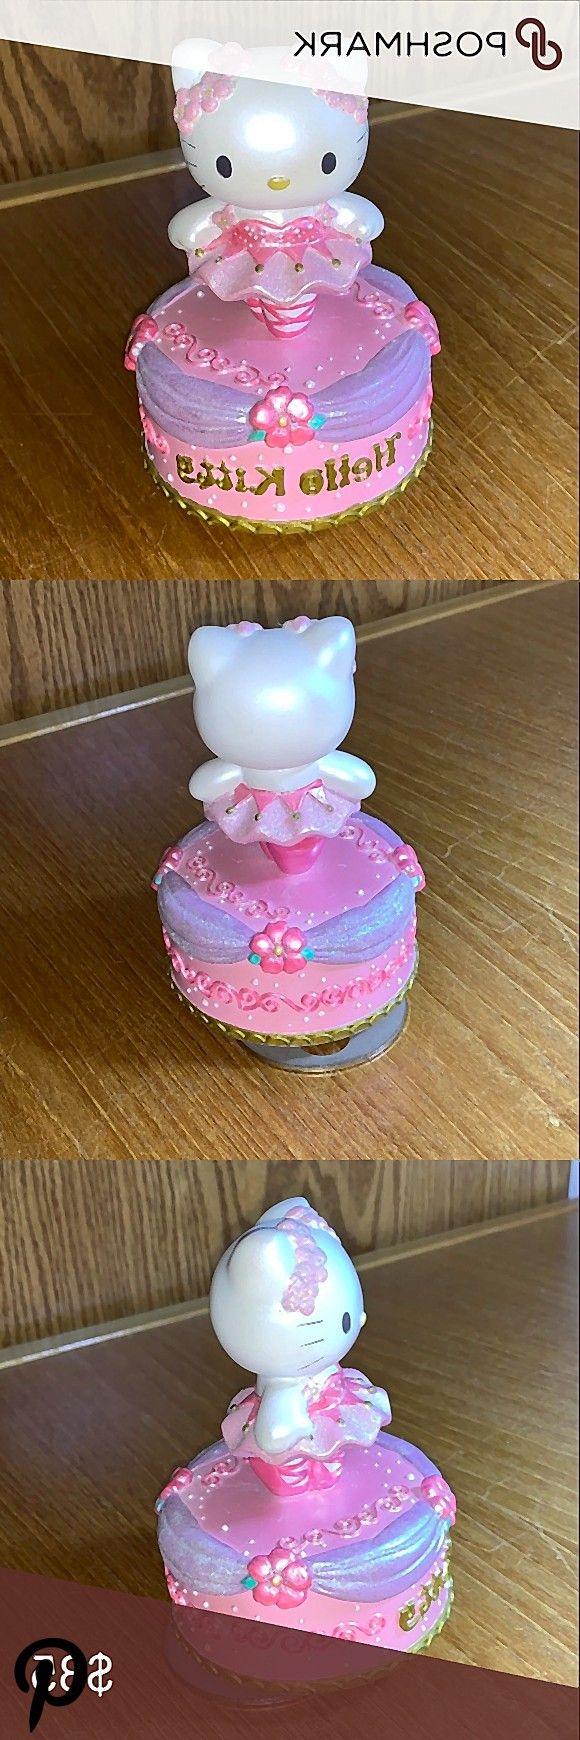 Sanrio vintage Hello Kitty rotating music box In good condition Probably bought in 2001 Hello Kitt Sanrio vintage Hello Kitty rotating music box In good condition Probabl...